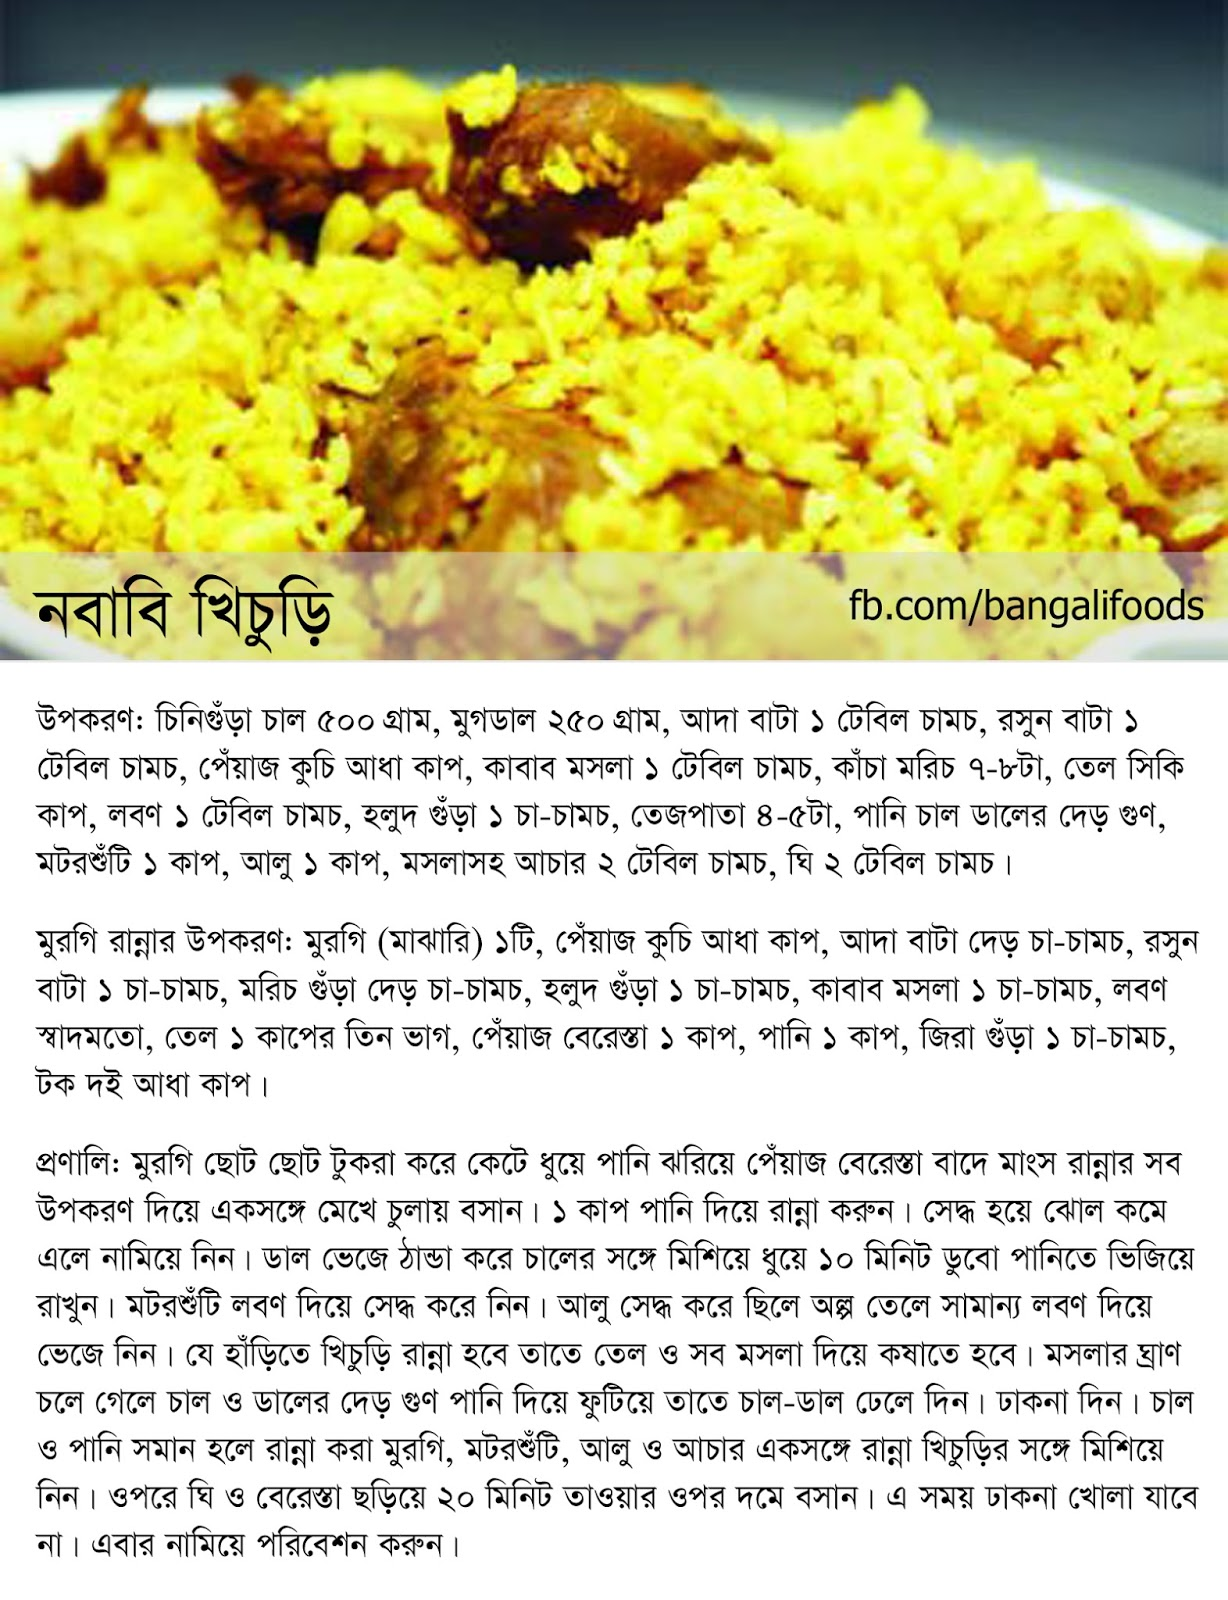 Bangali foods some khichuri recipes in bangla nobabi khichuri forumfinder